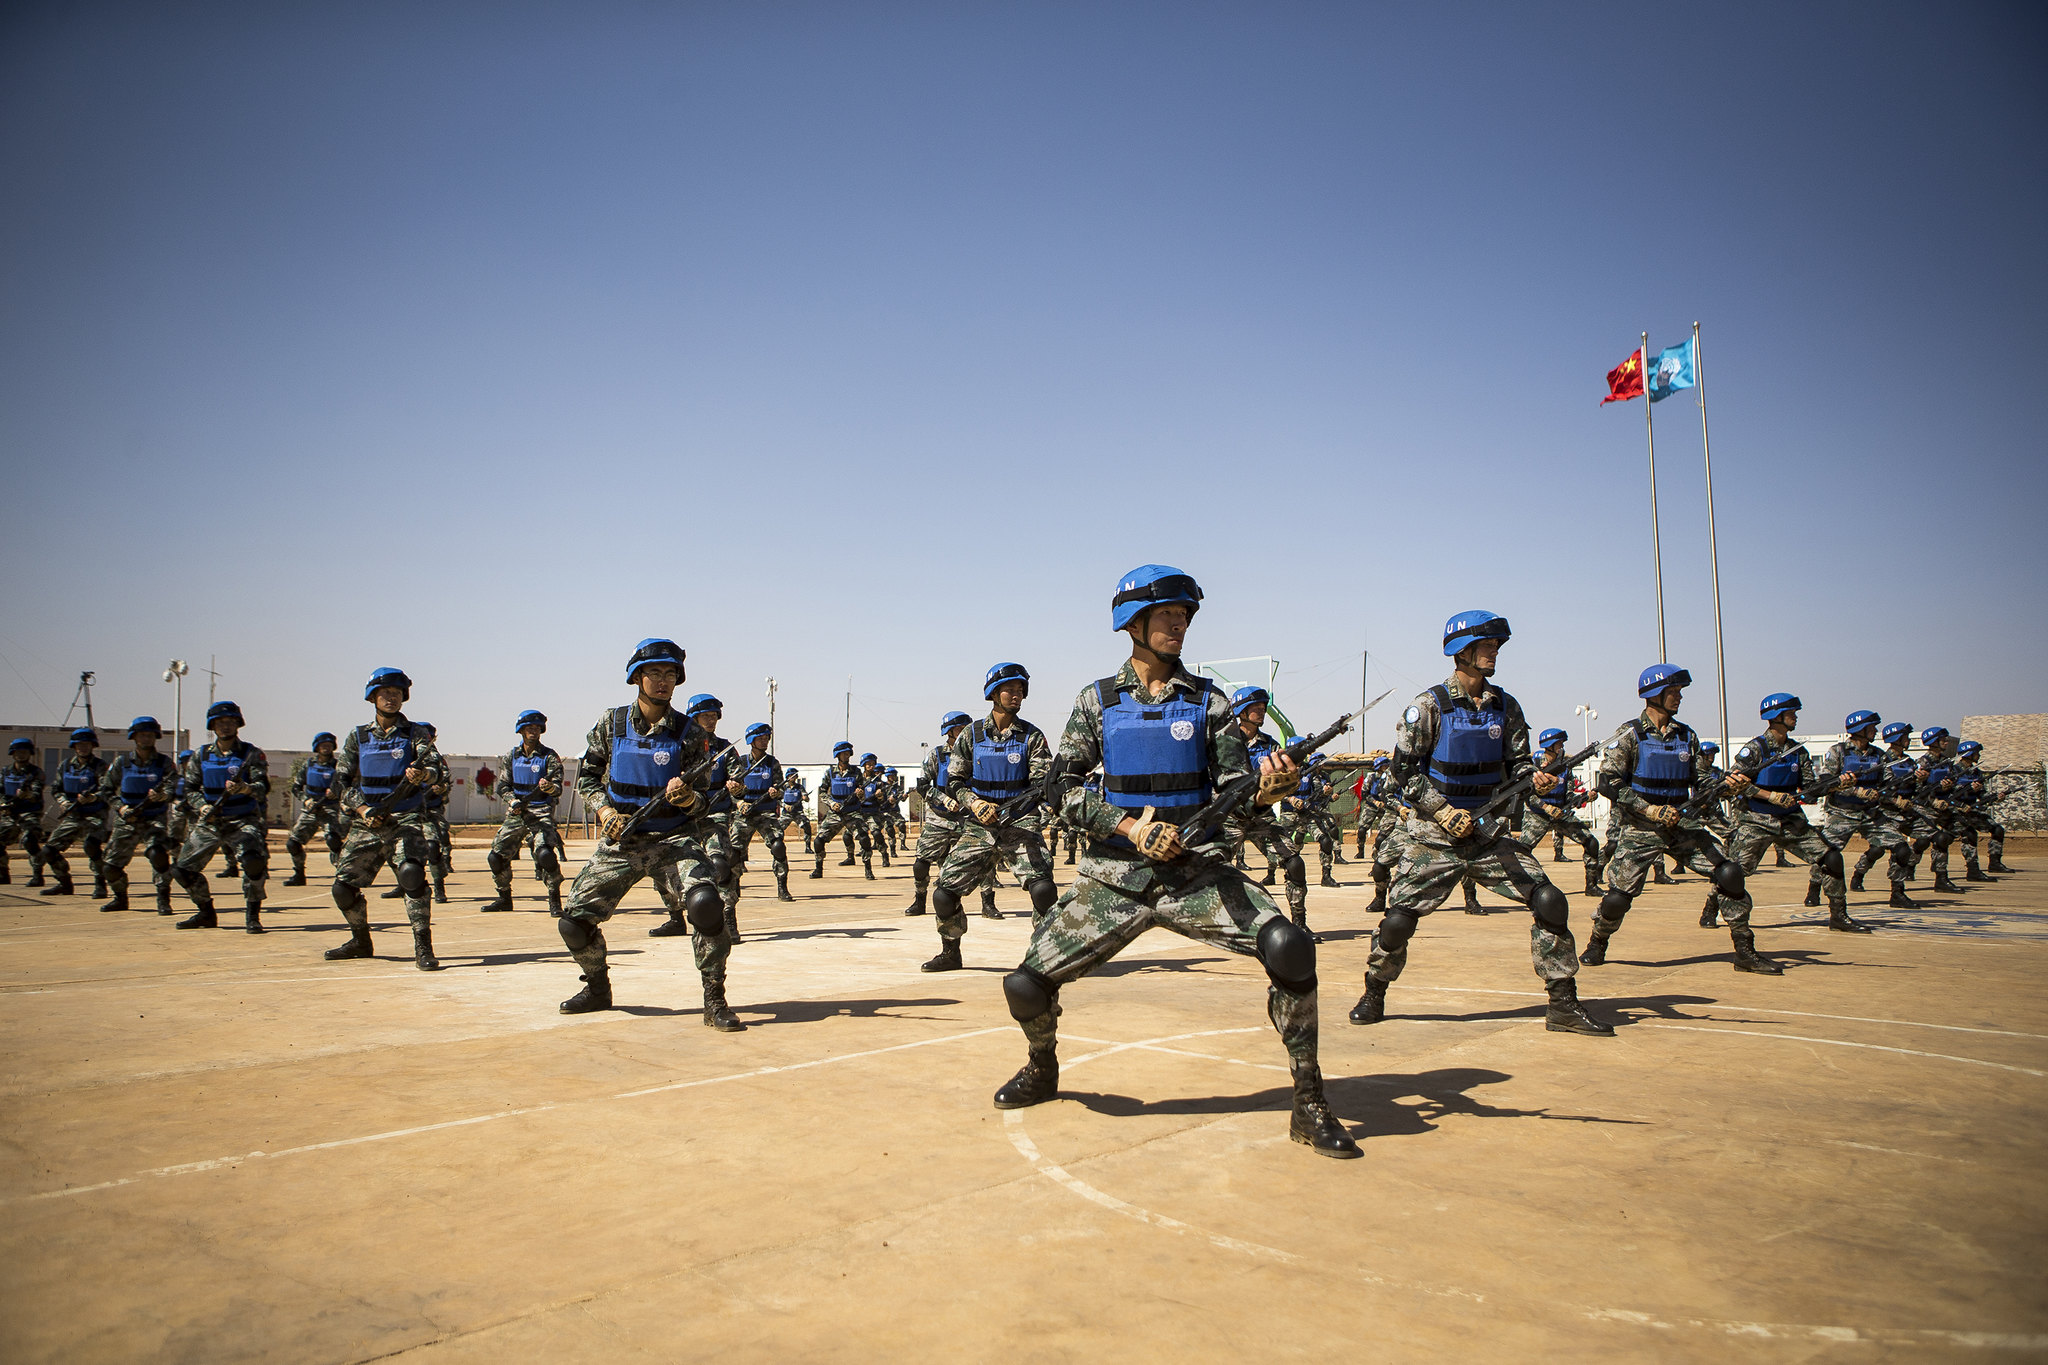 China's participation in UN peacekeeping missions